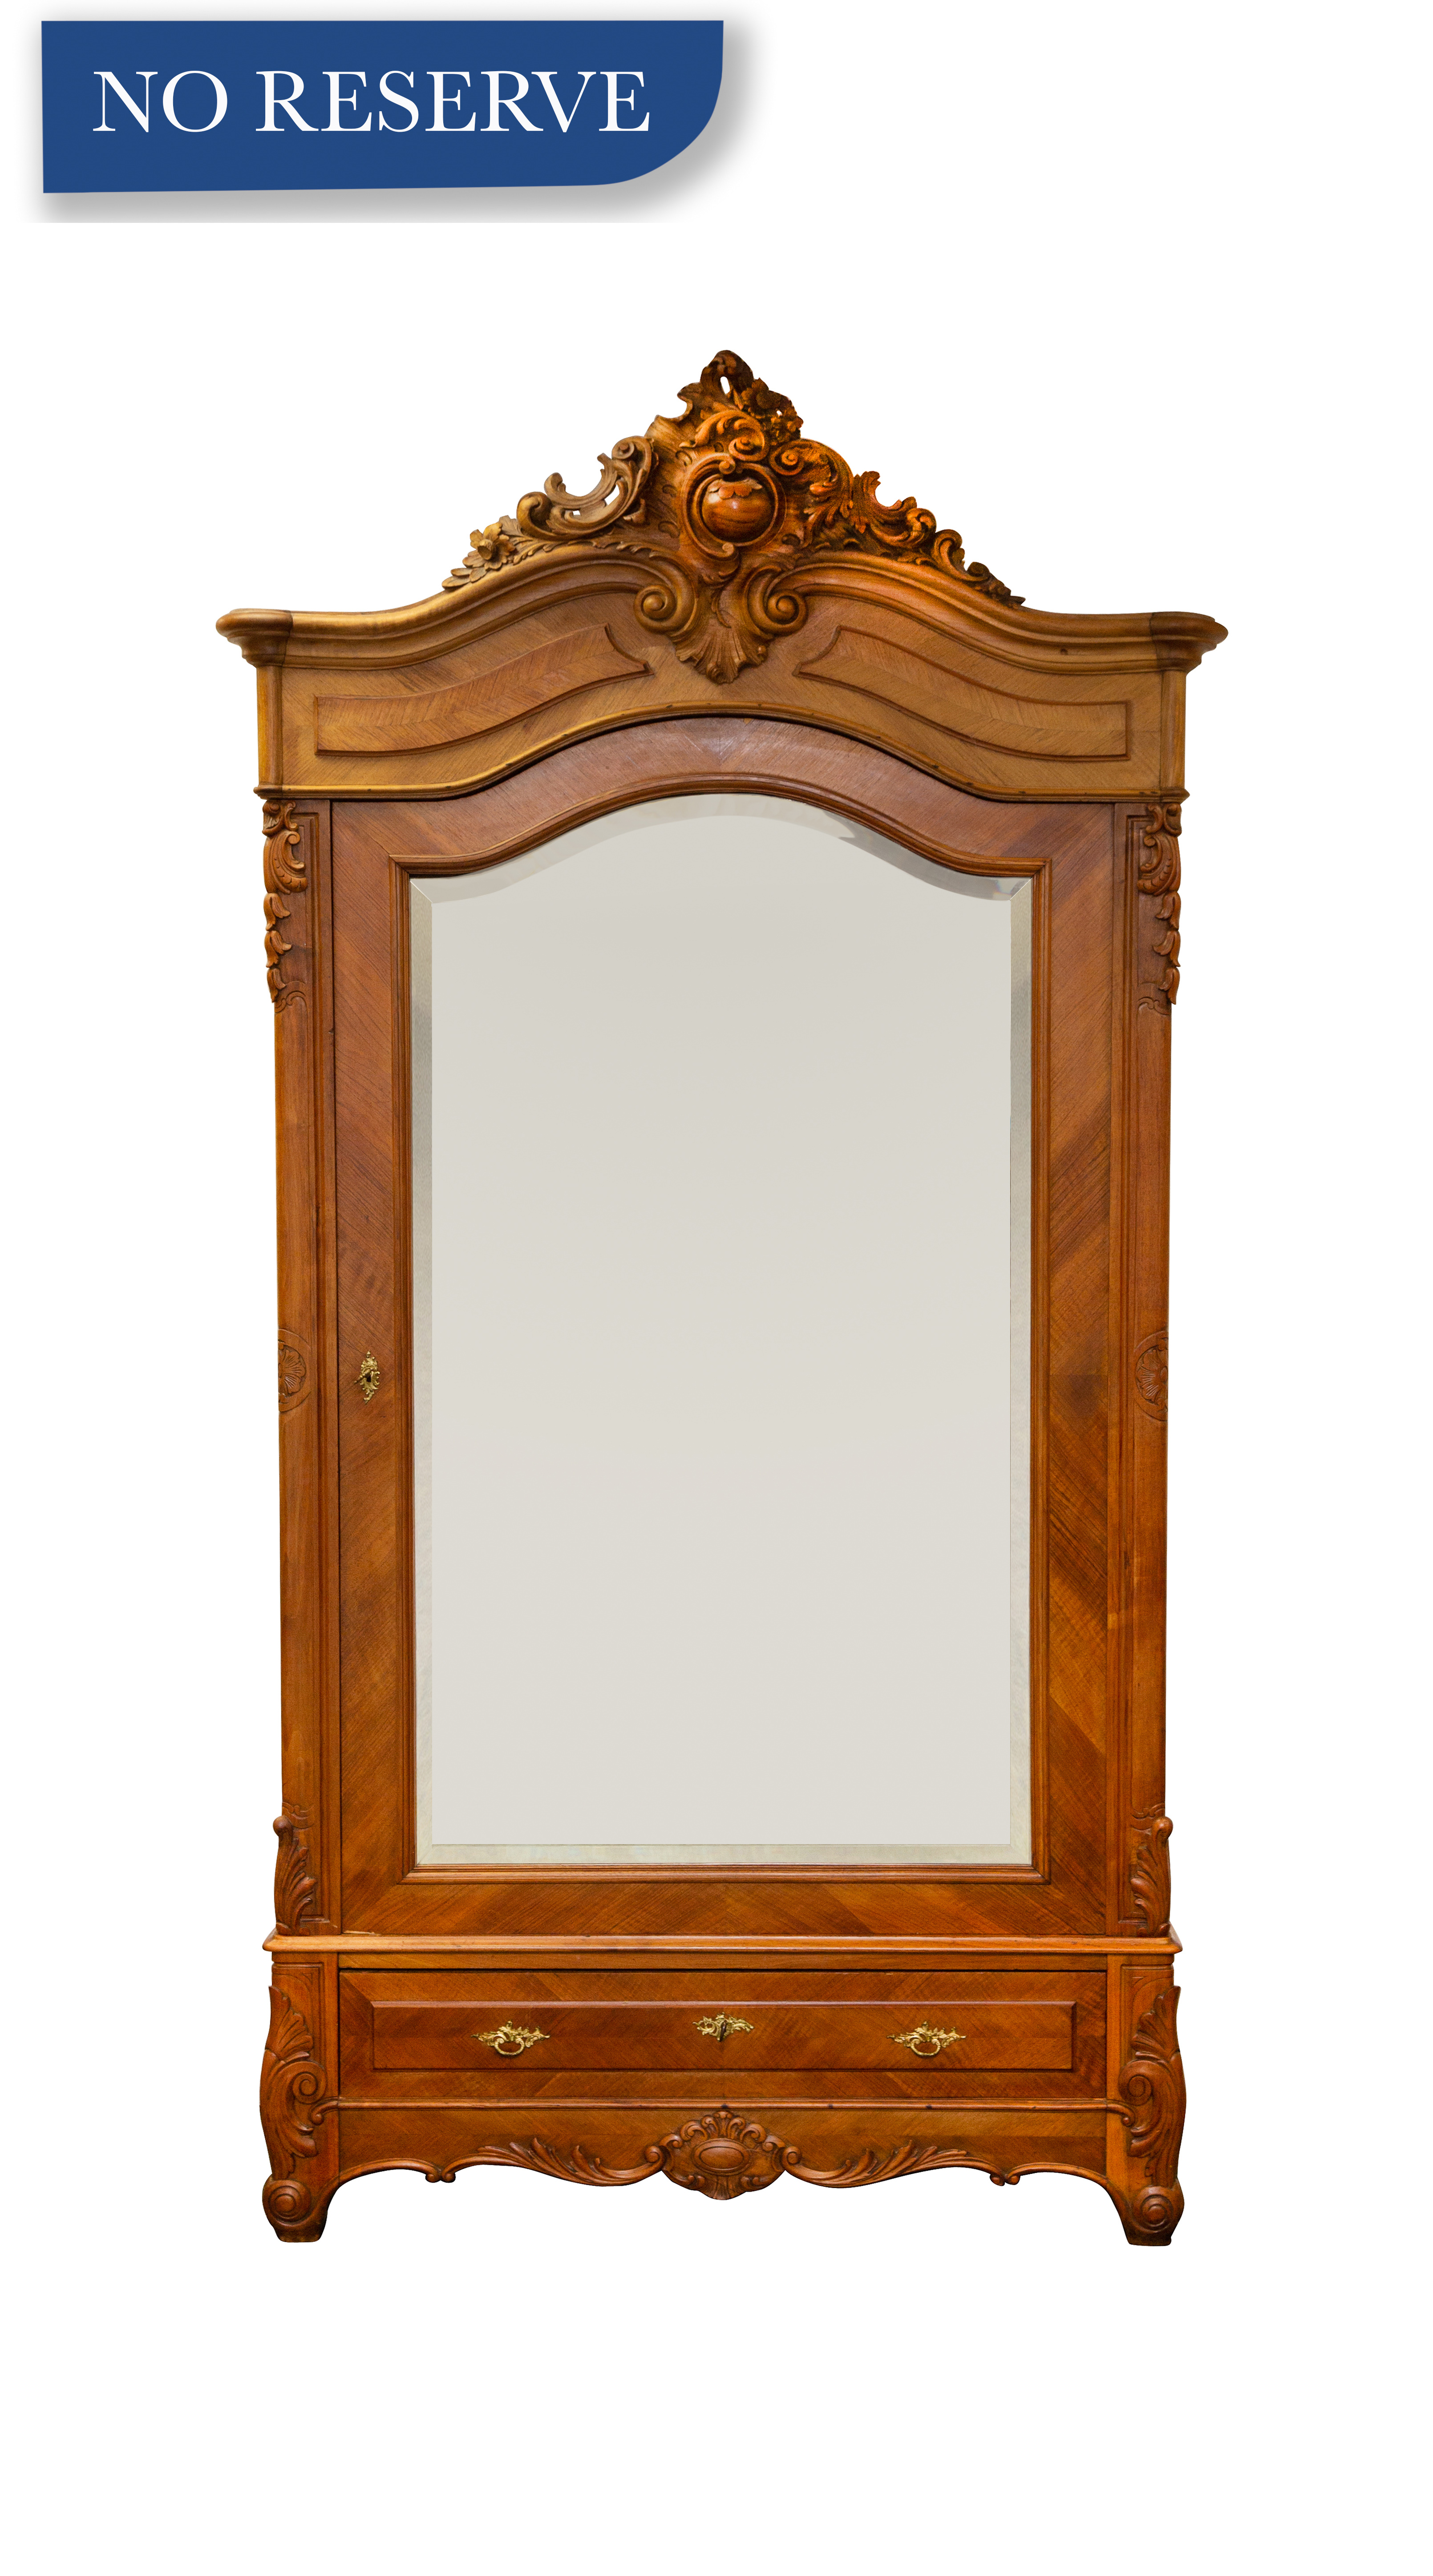 LATE 19TH CENTURY FRENCH REGENCE CARVED WALNUT OVERSIZED MIRRORED SINGLE DOOR ARMOIRE